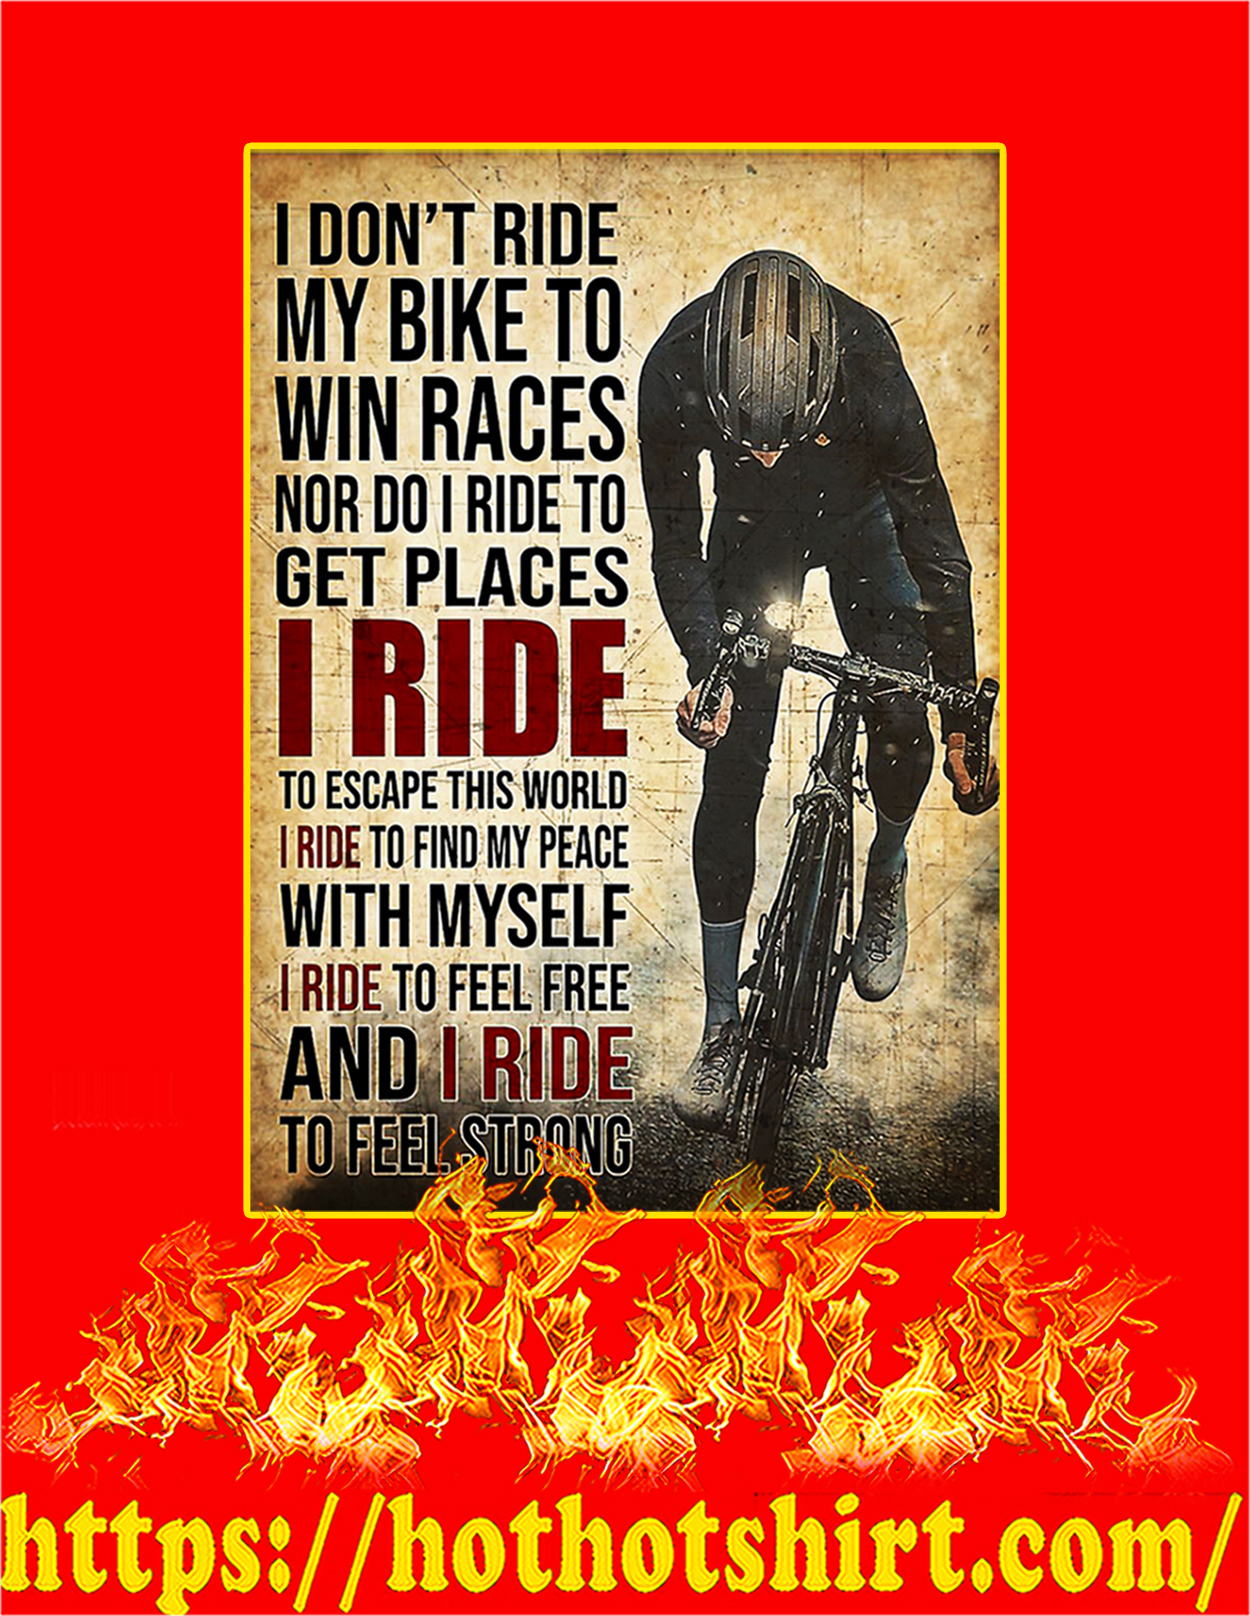 I don't ride my bike to win races poster - A3